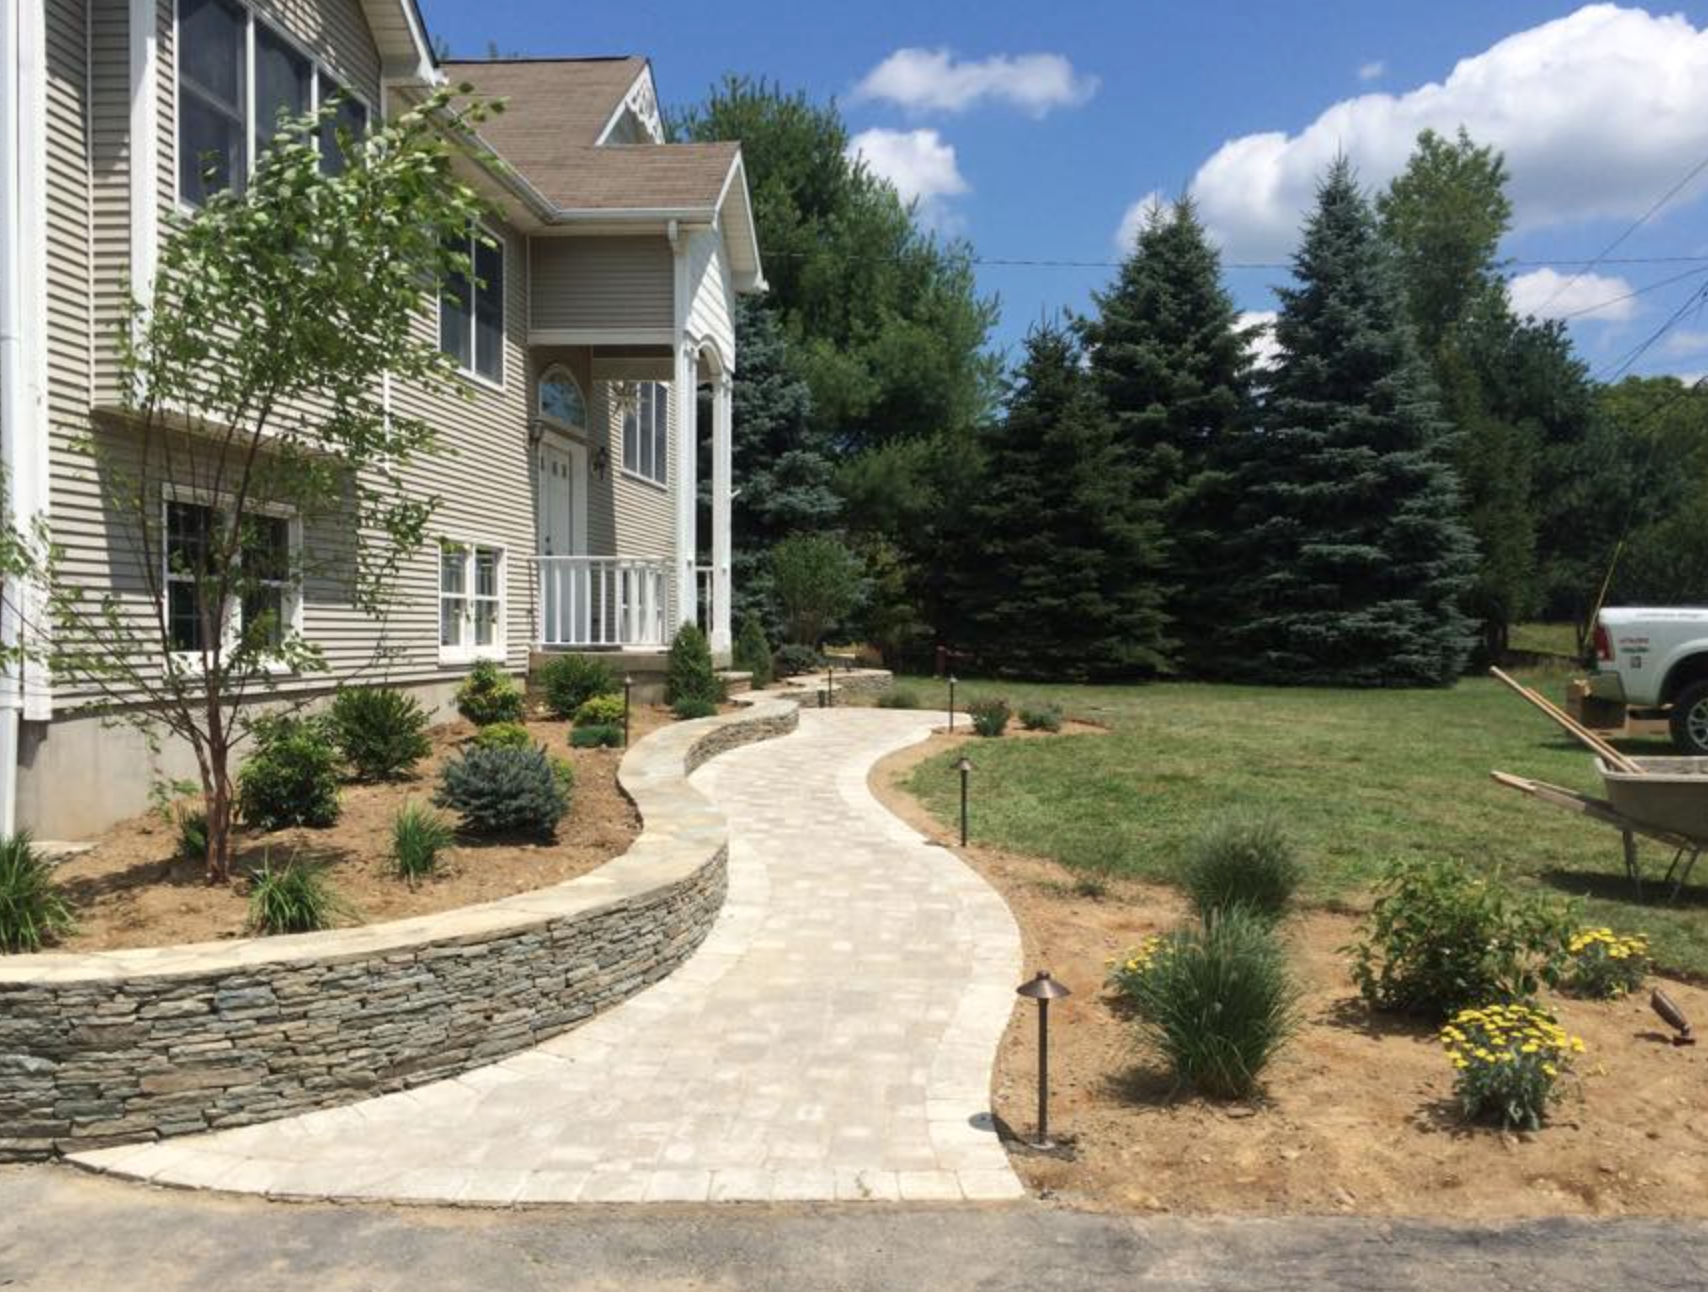 Stunning walkway with retaining wall - landscaping ideas in Warwick, New York